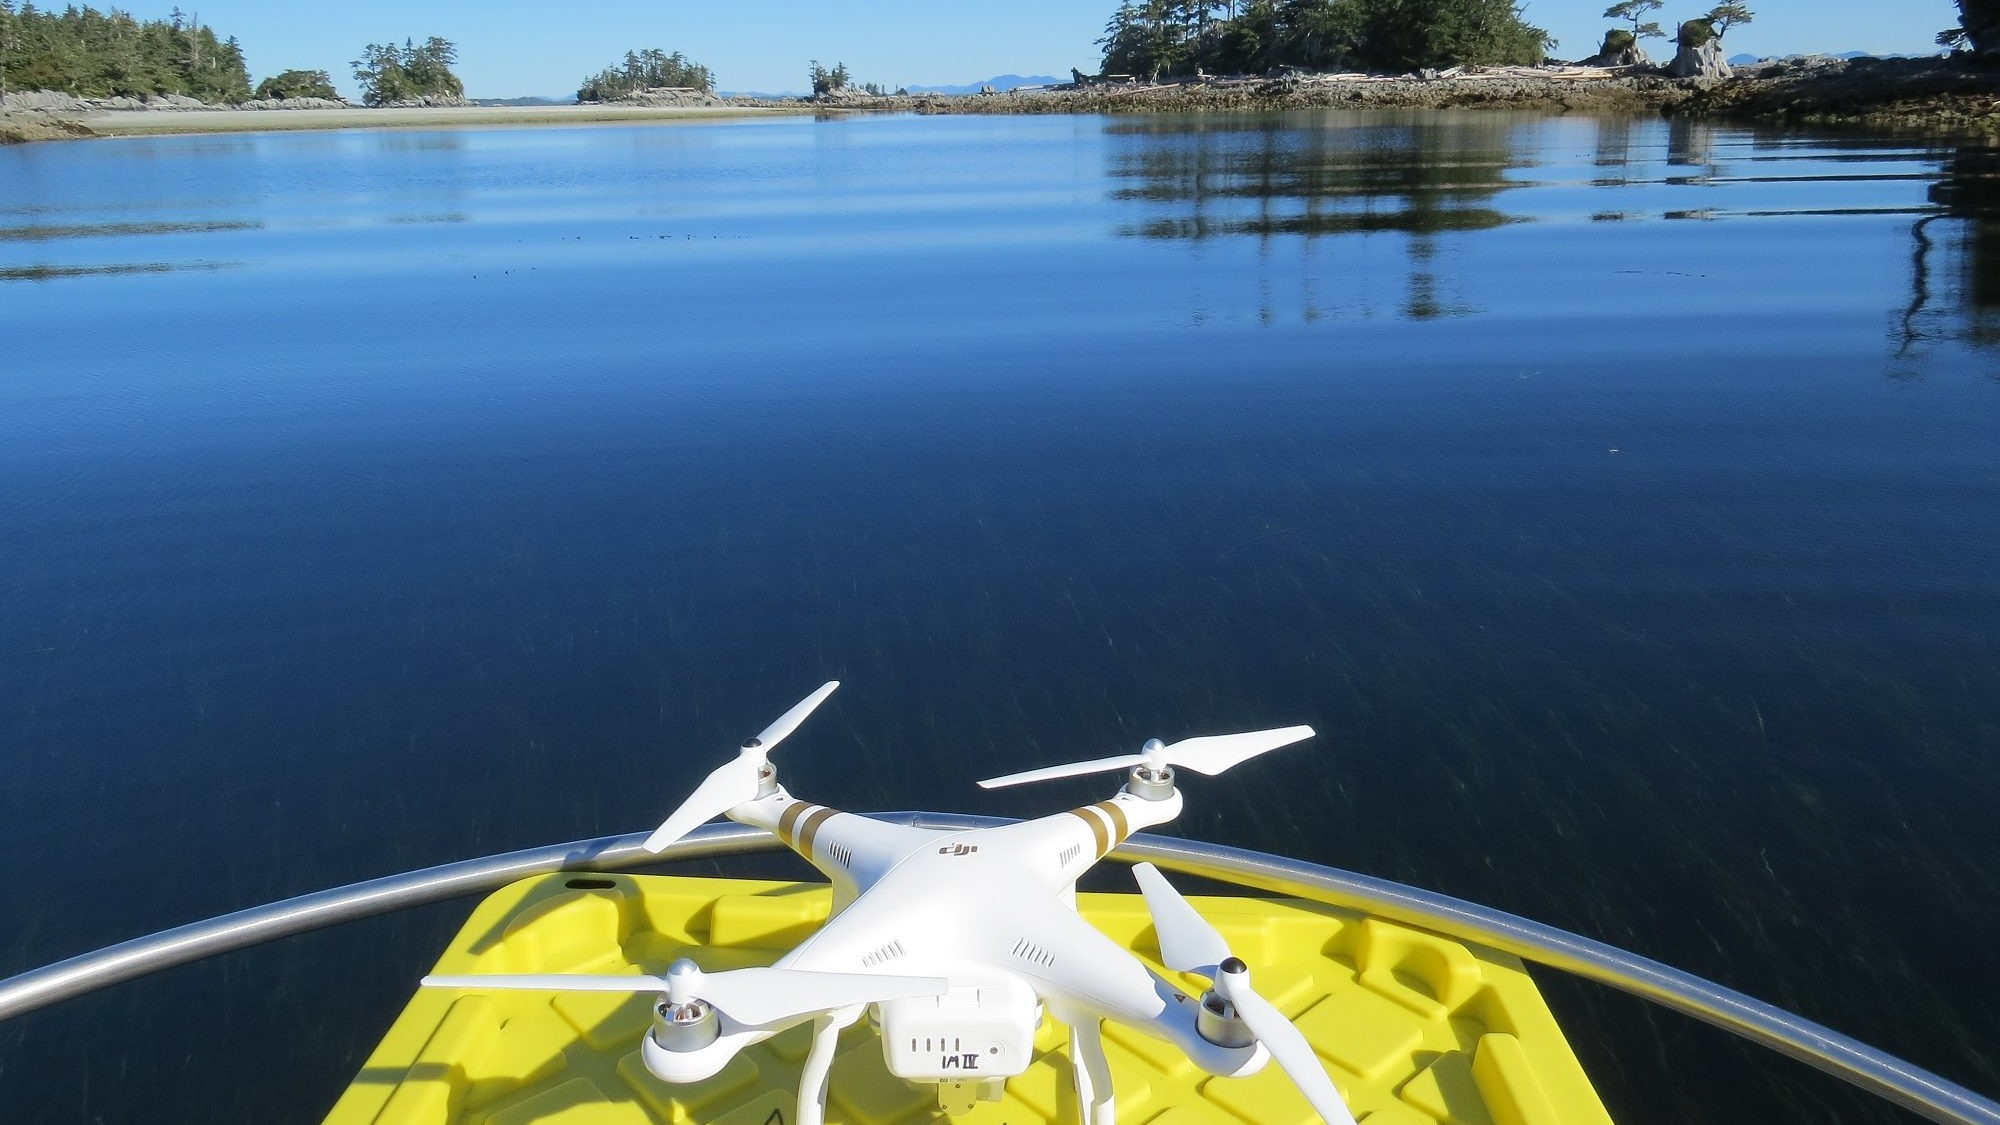 A drone ready to take off from a boat.